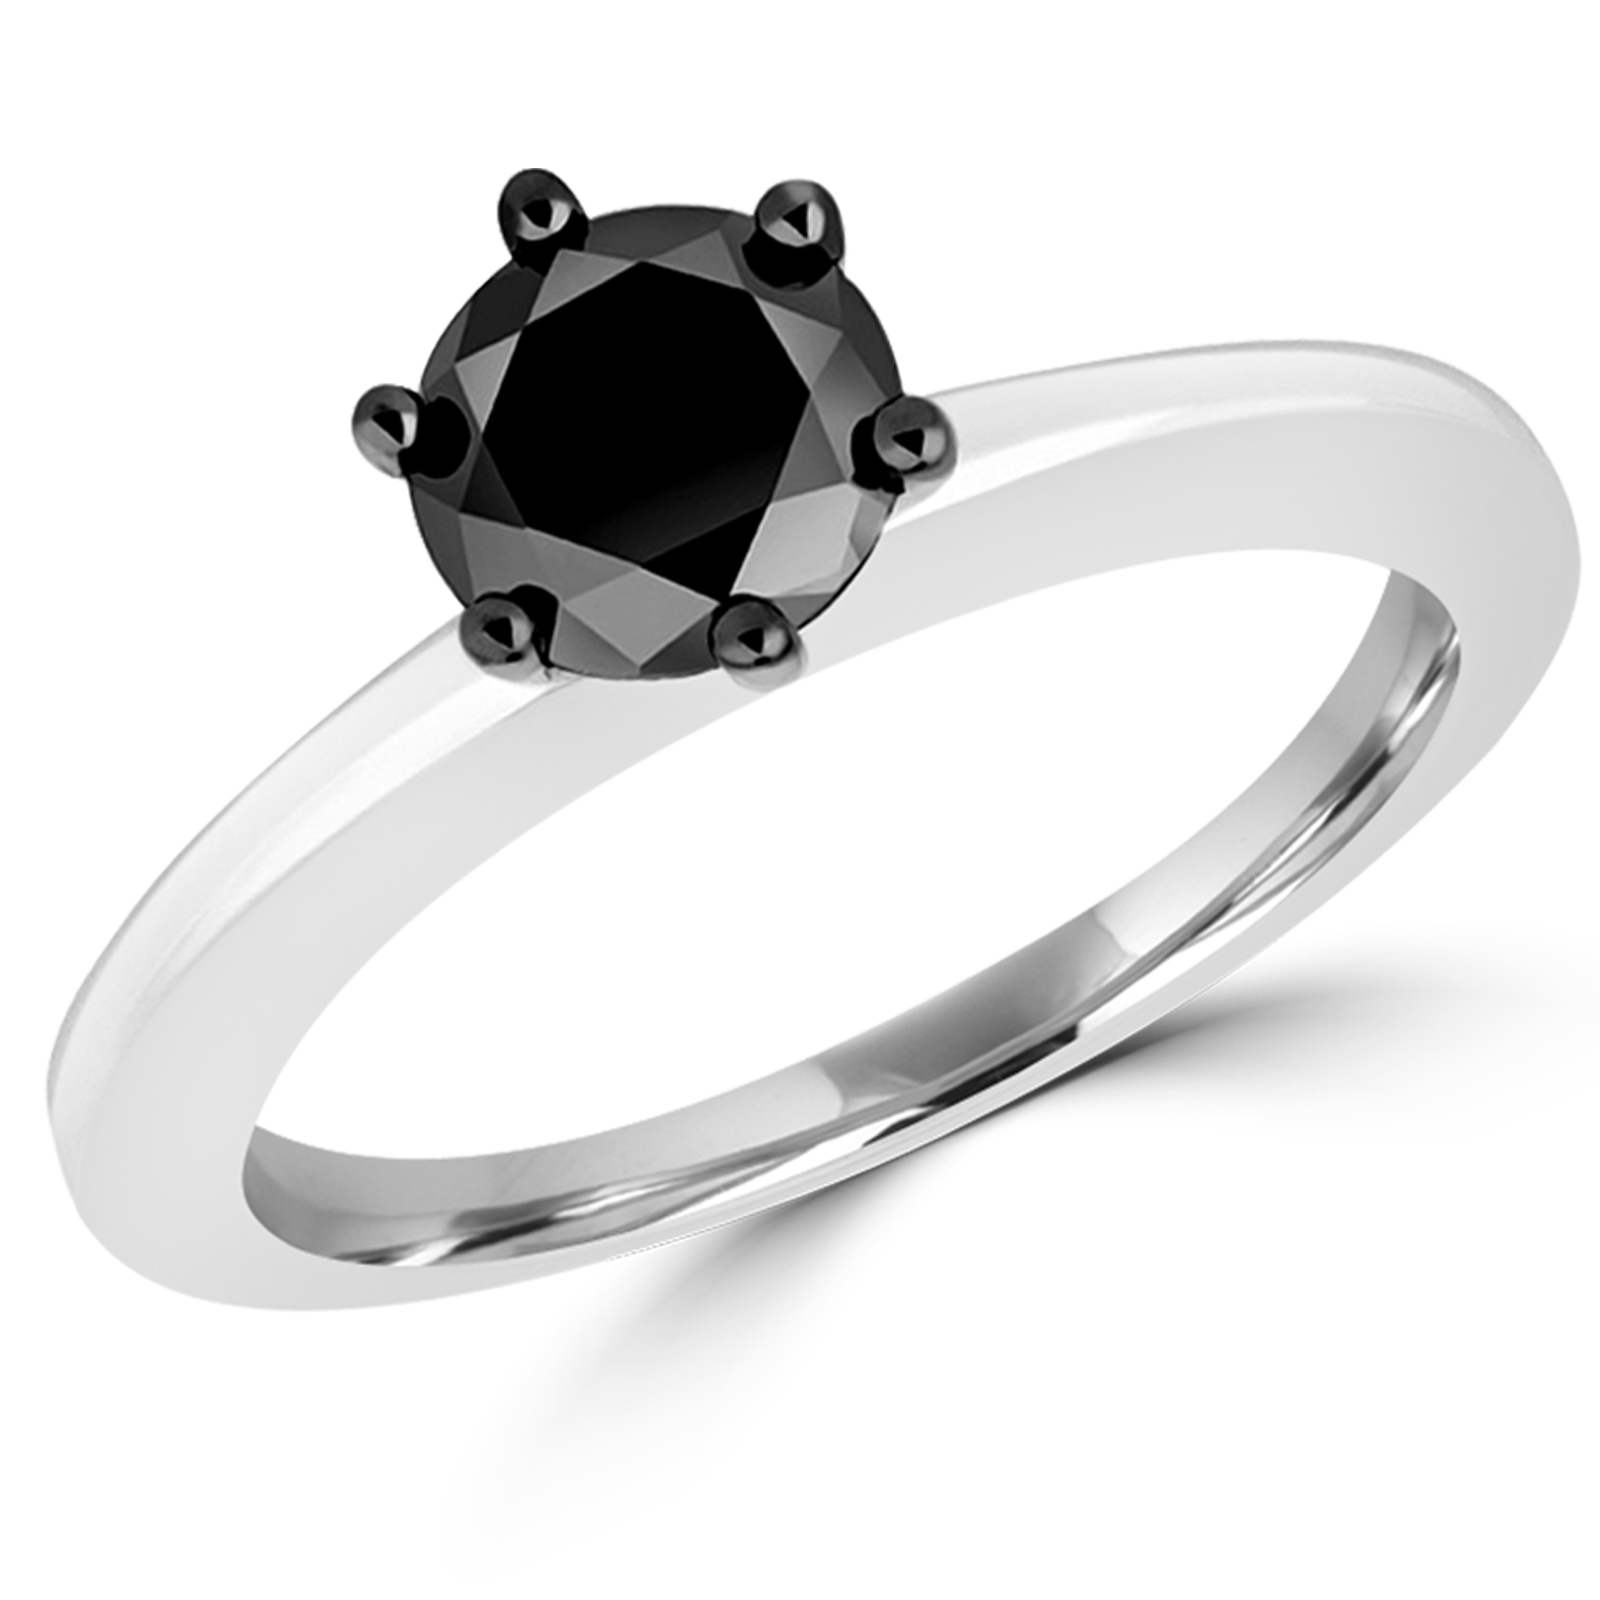 4/5 CT Round Black Diamond Solitaire Engagement Ring in 10K White Gold (MDR130024) - image 2 de 2